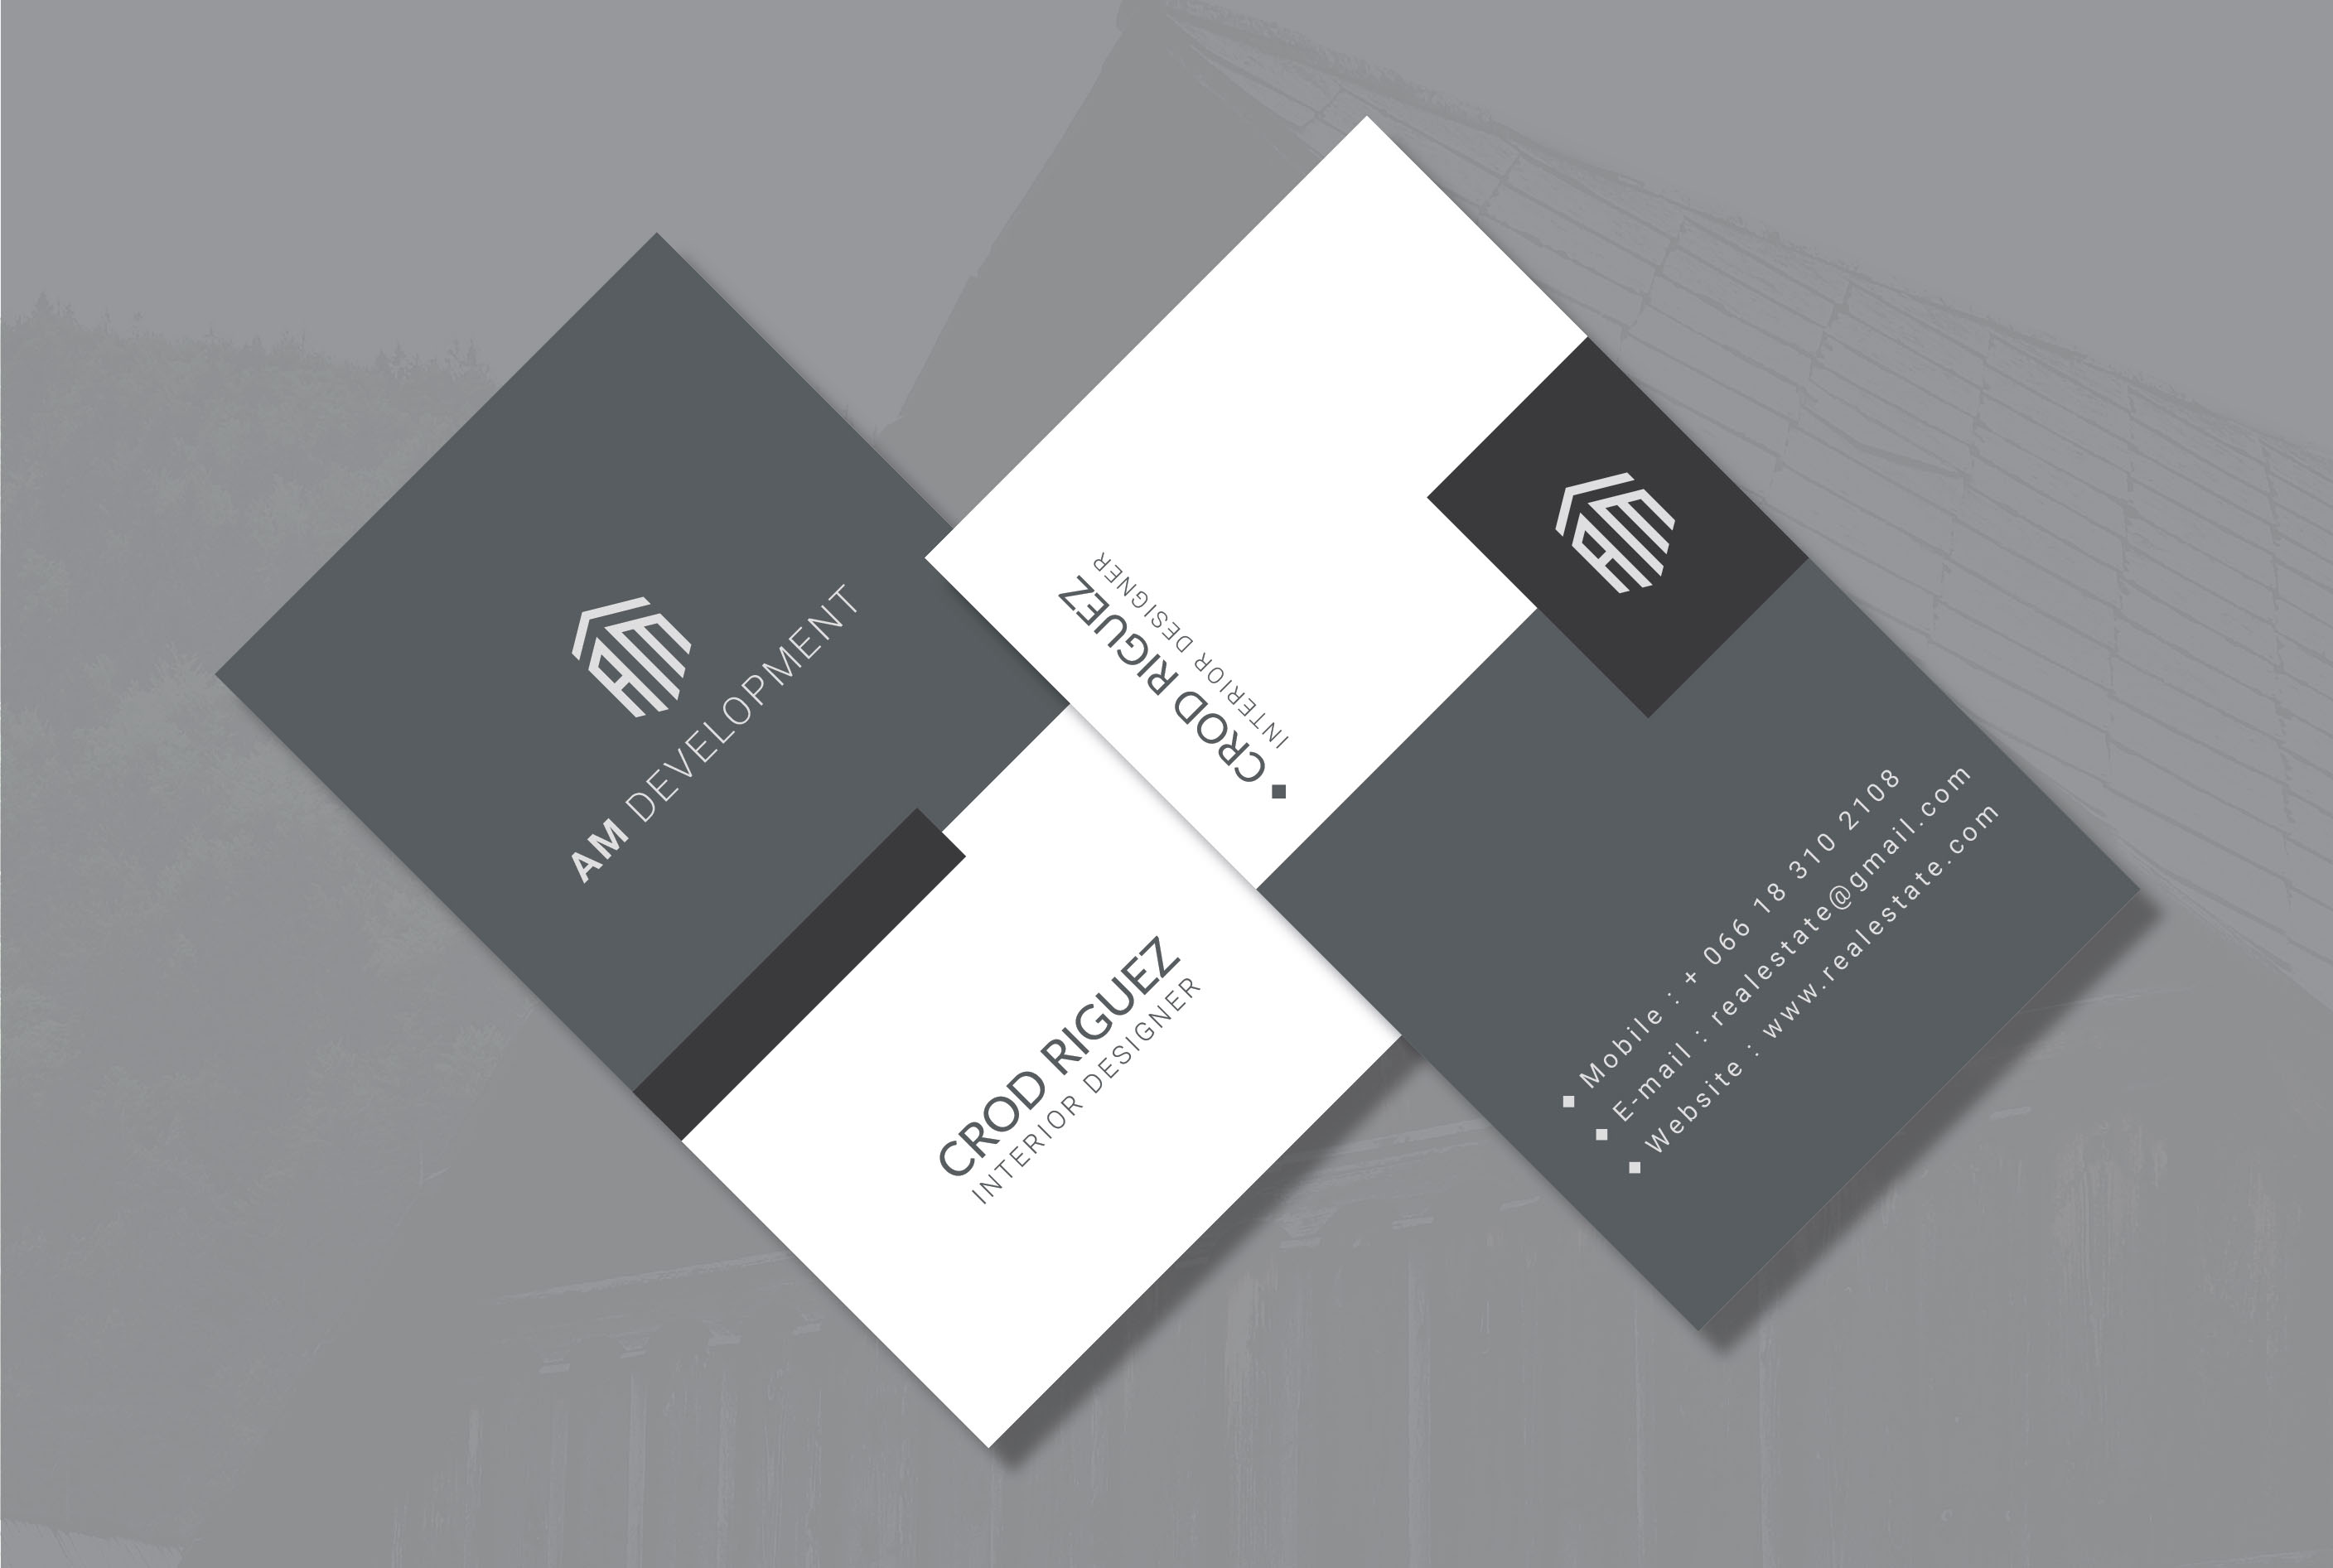 I will design a minimalist business card for you with two concept